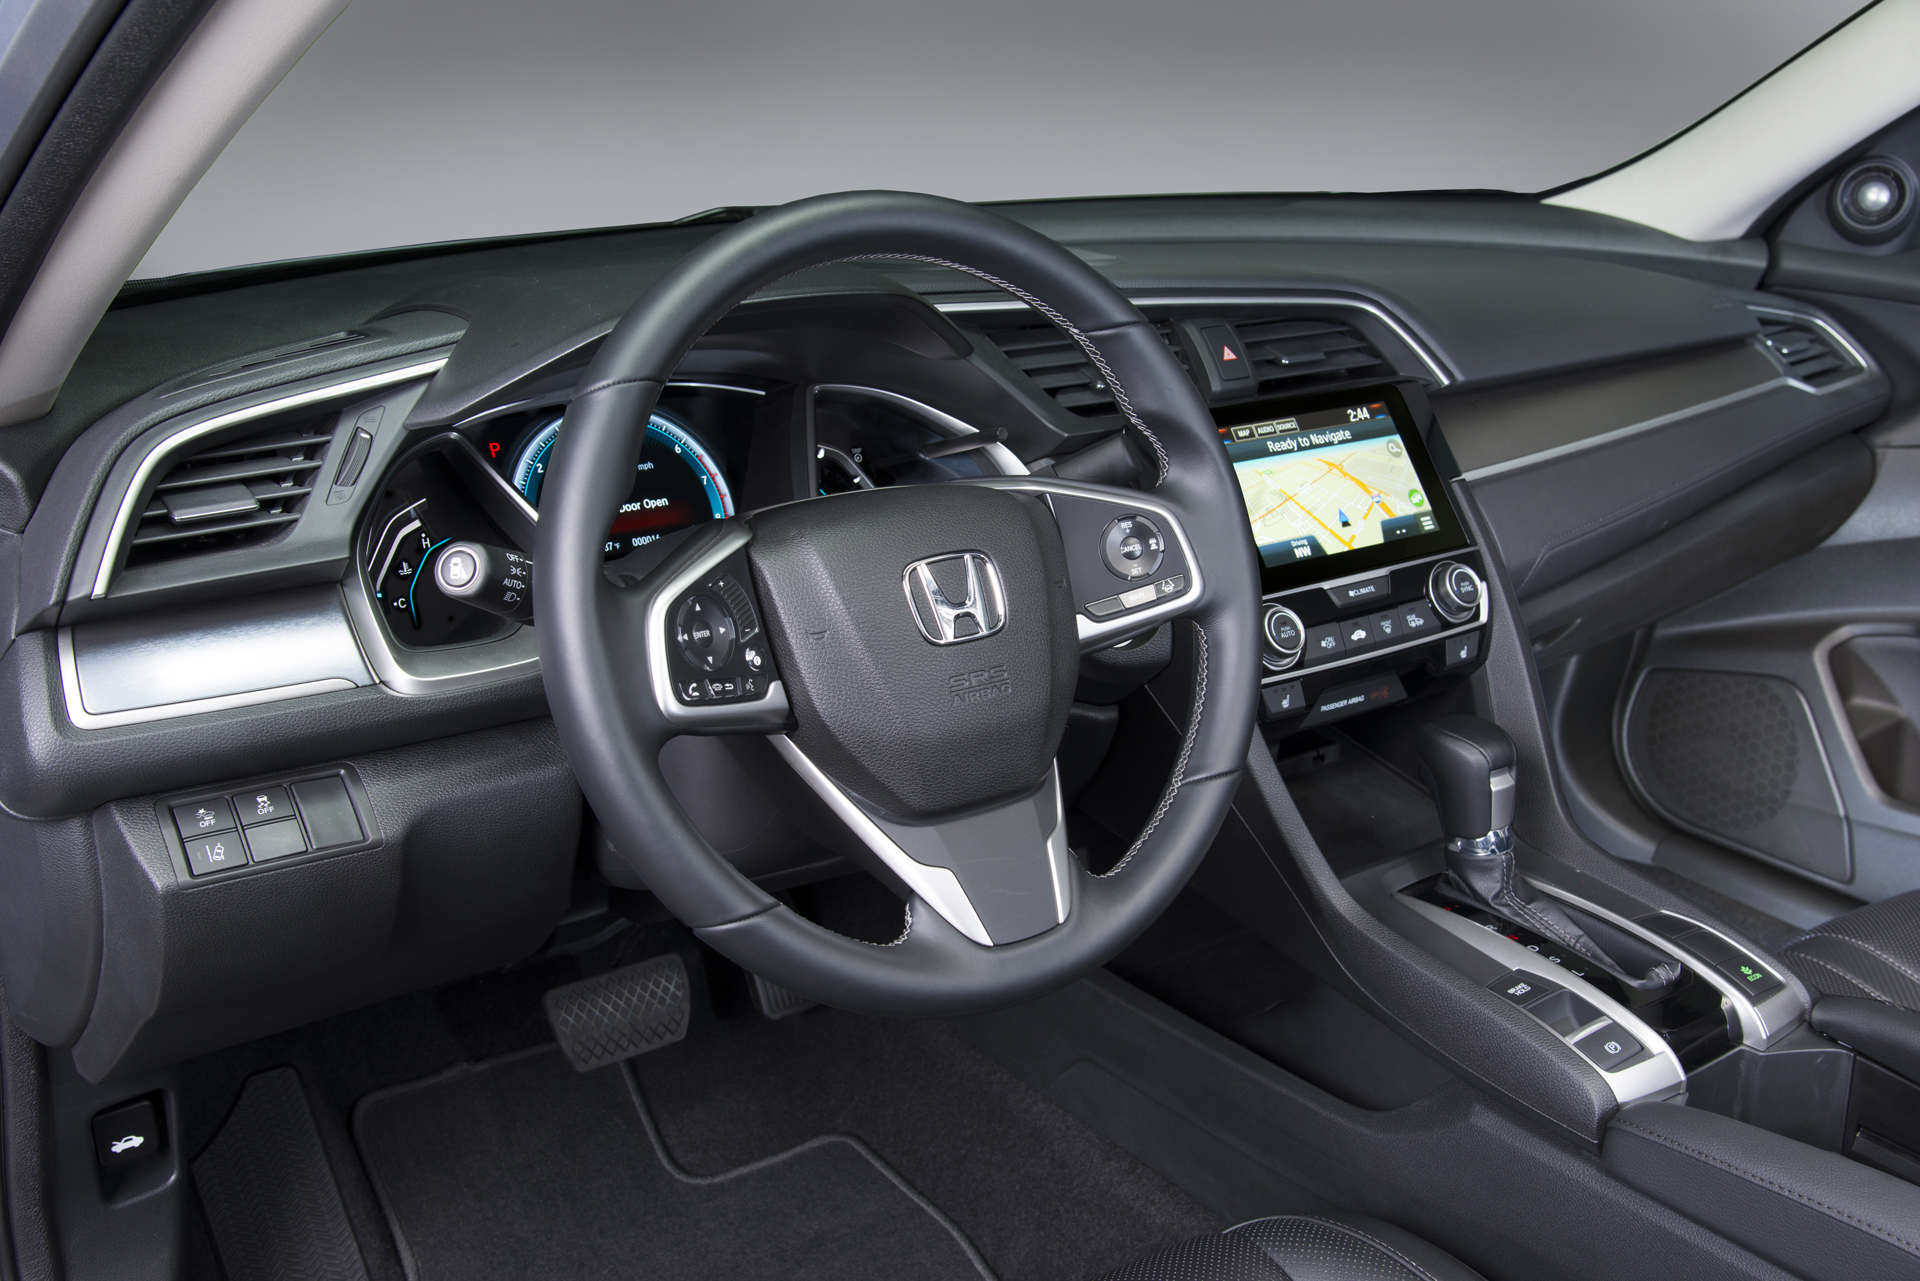 Honda Civic 04 1 Jpg